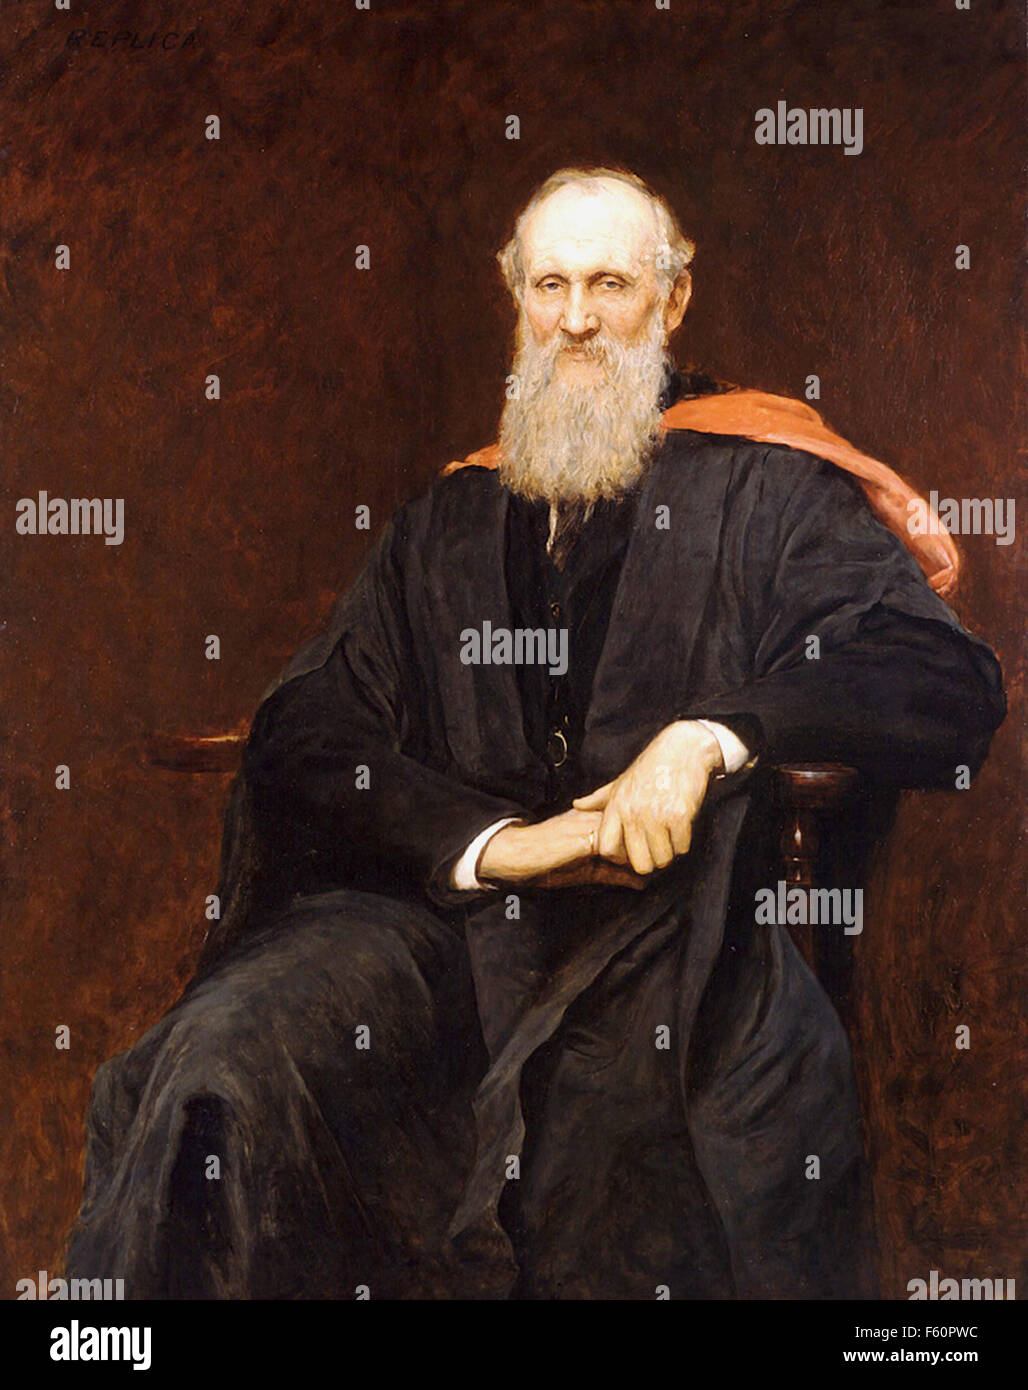 WILLIAM THOMSON, Lord Kelvin (1824-1907) Irish physicist and engineer painted by Hubert Herkomer about 1900 - Stock Image